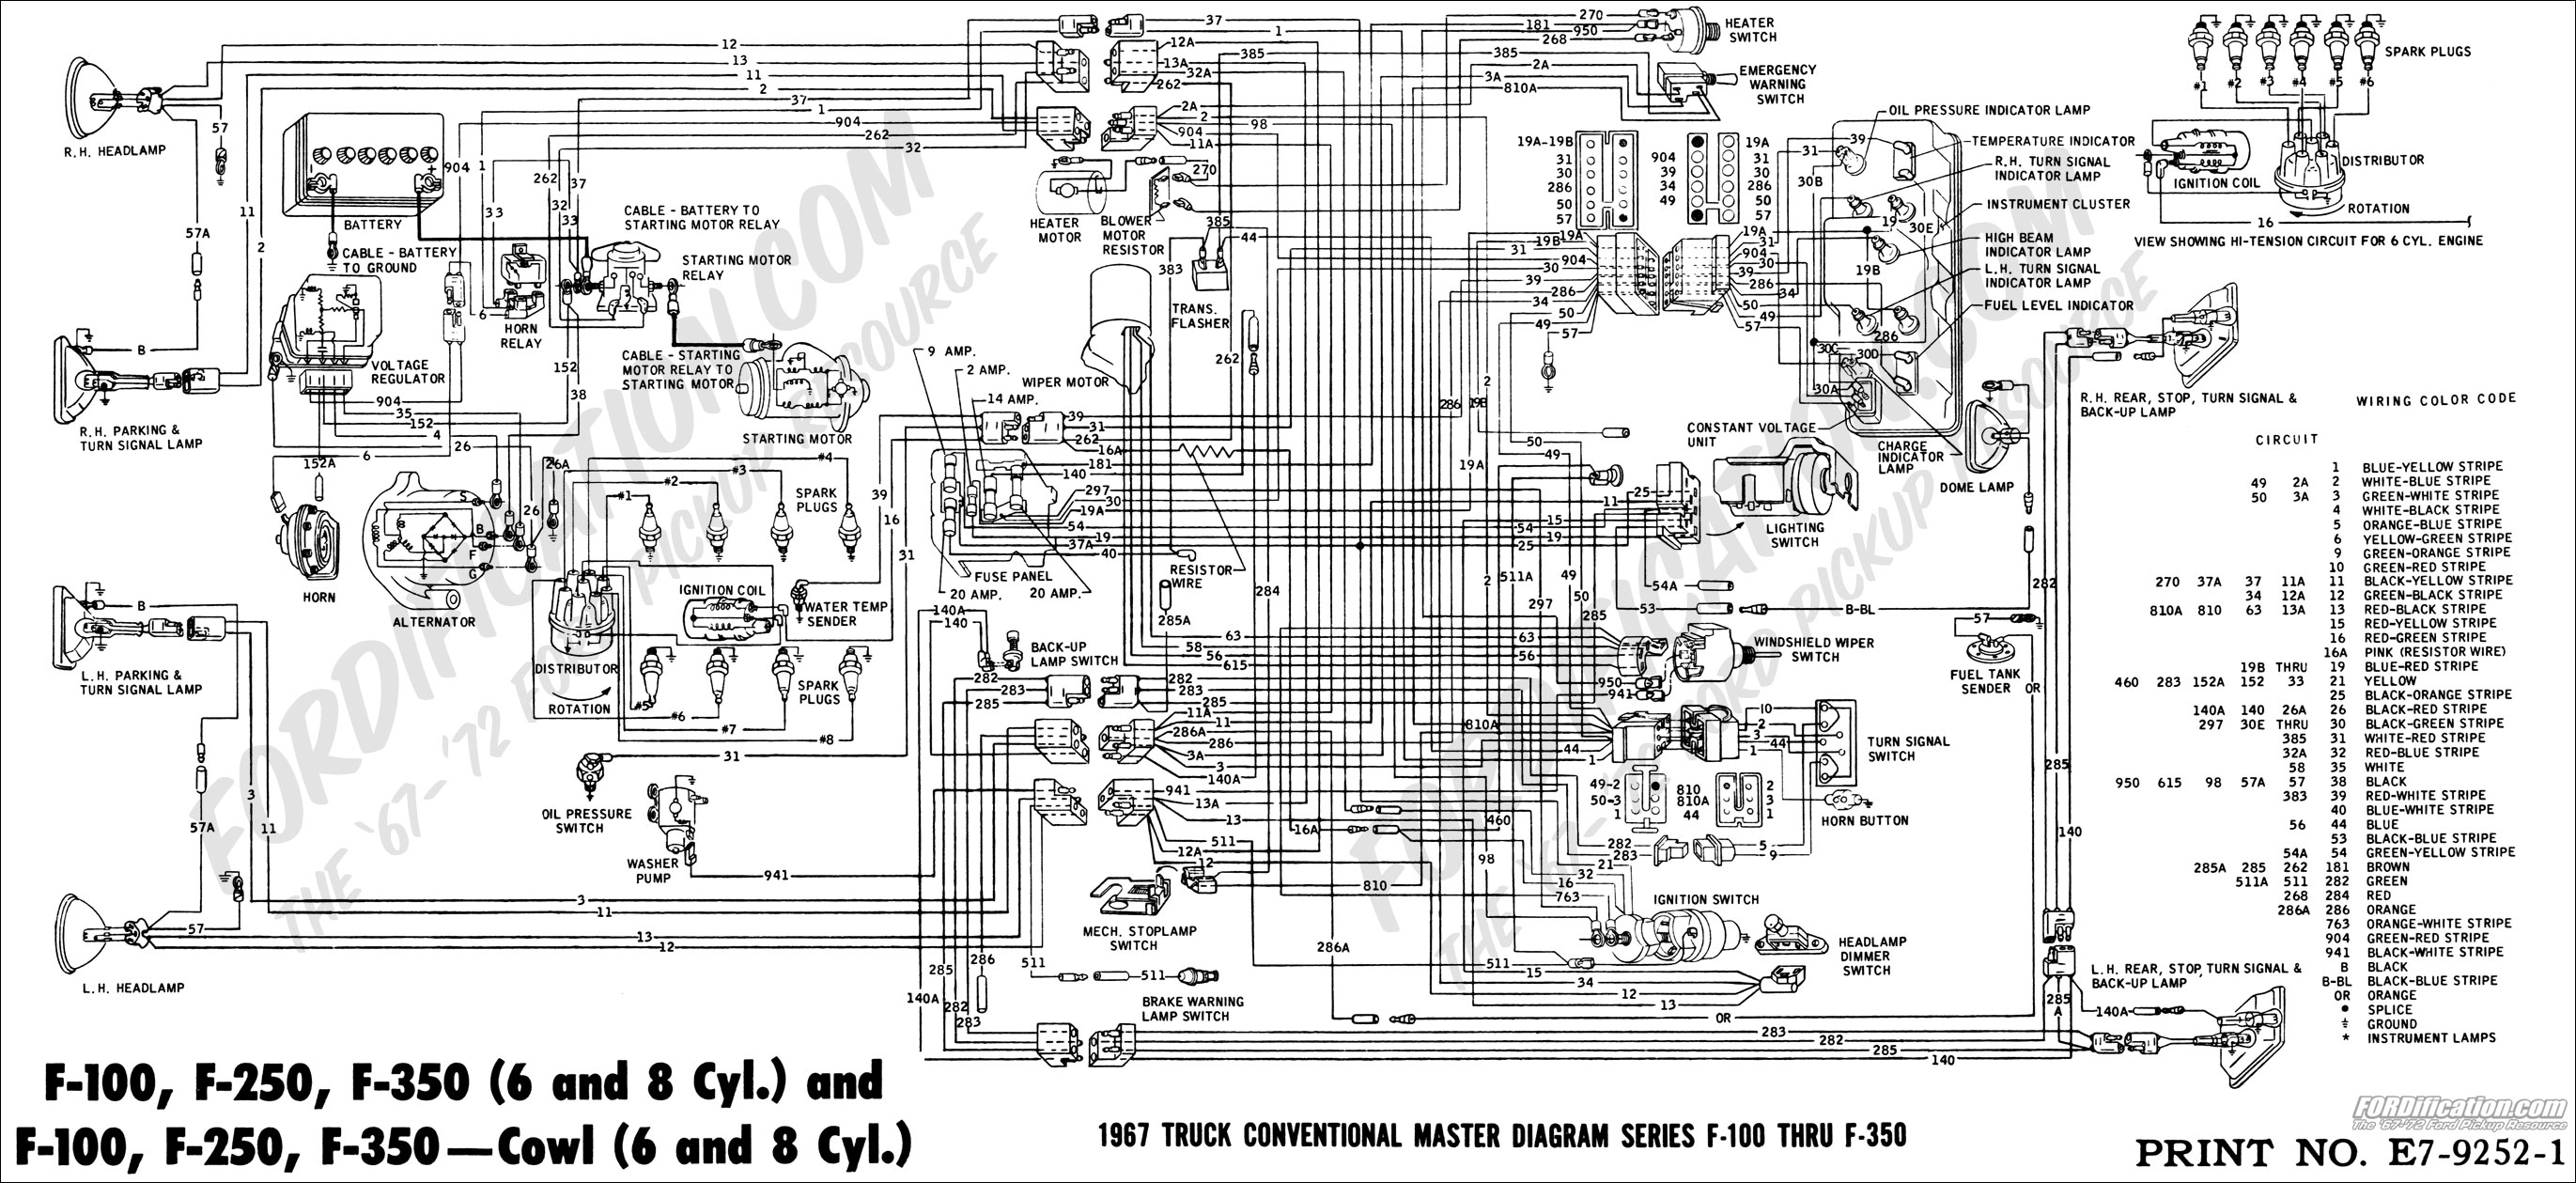 1983 ford f150 radio wiring diagram coleman mach thermostat truck technical drawings and schematics section h